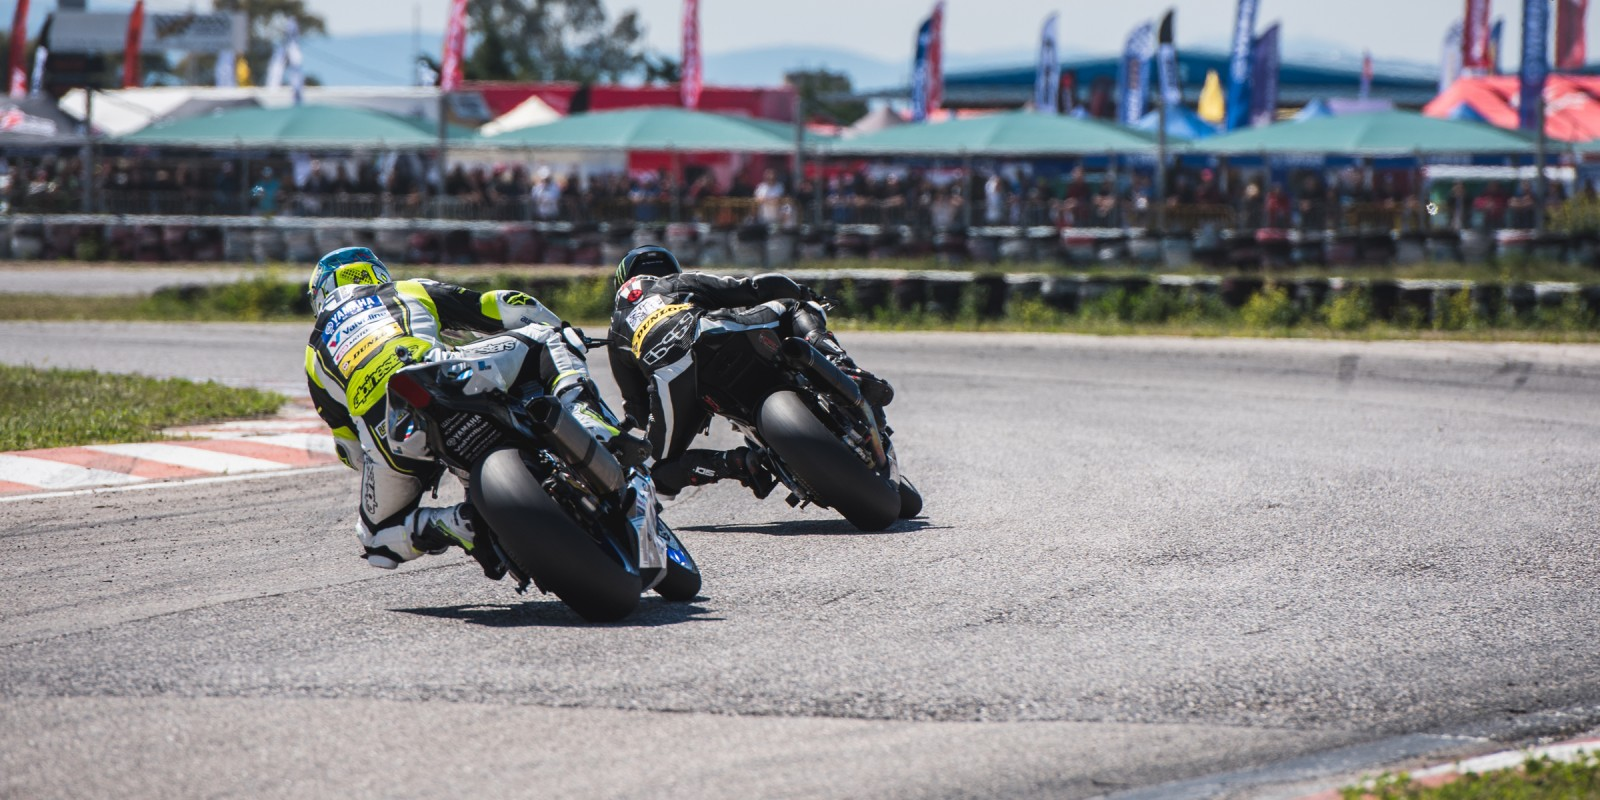 Photos of our local Superbike athlete Sakis Sinioris, during the 1st race of the National Championship. The event wasn't sponsored by ME